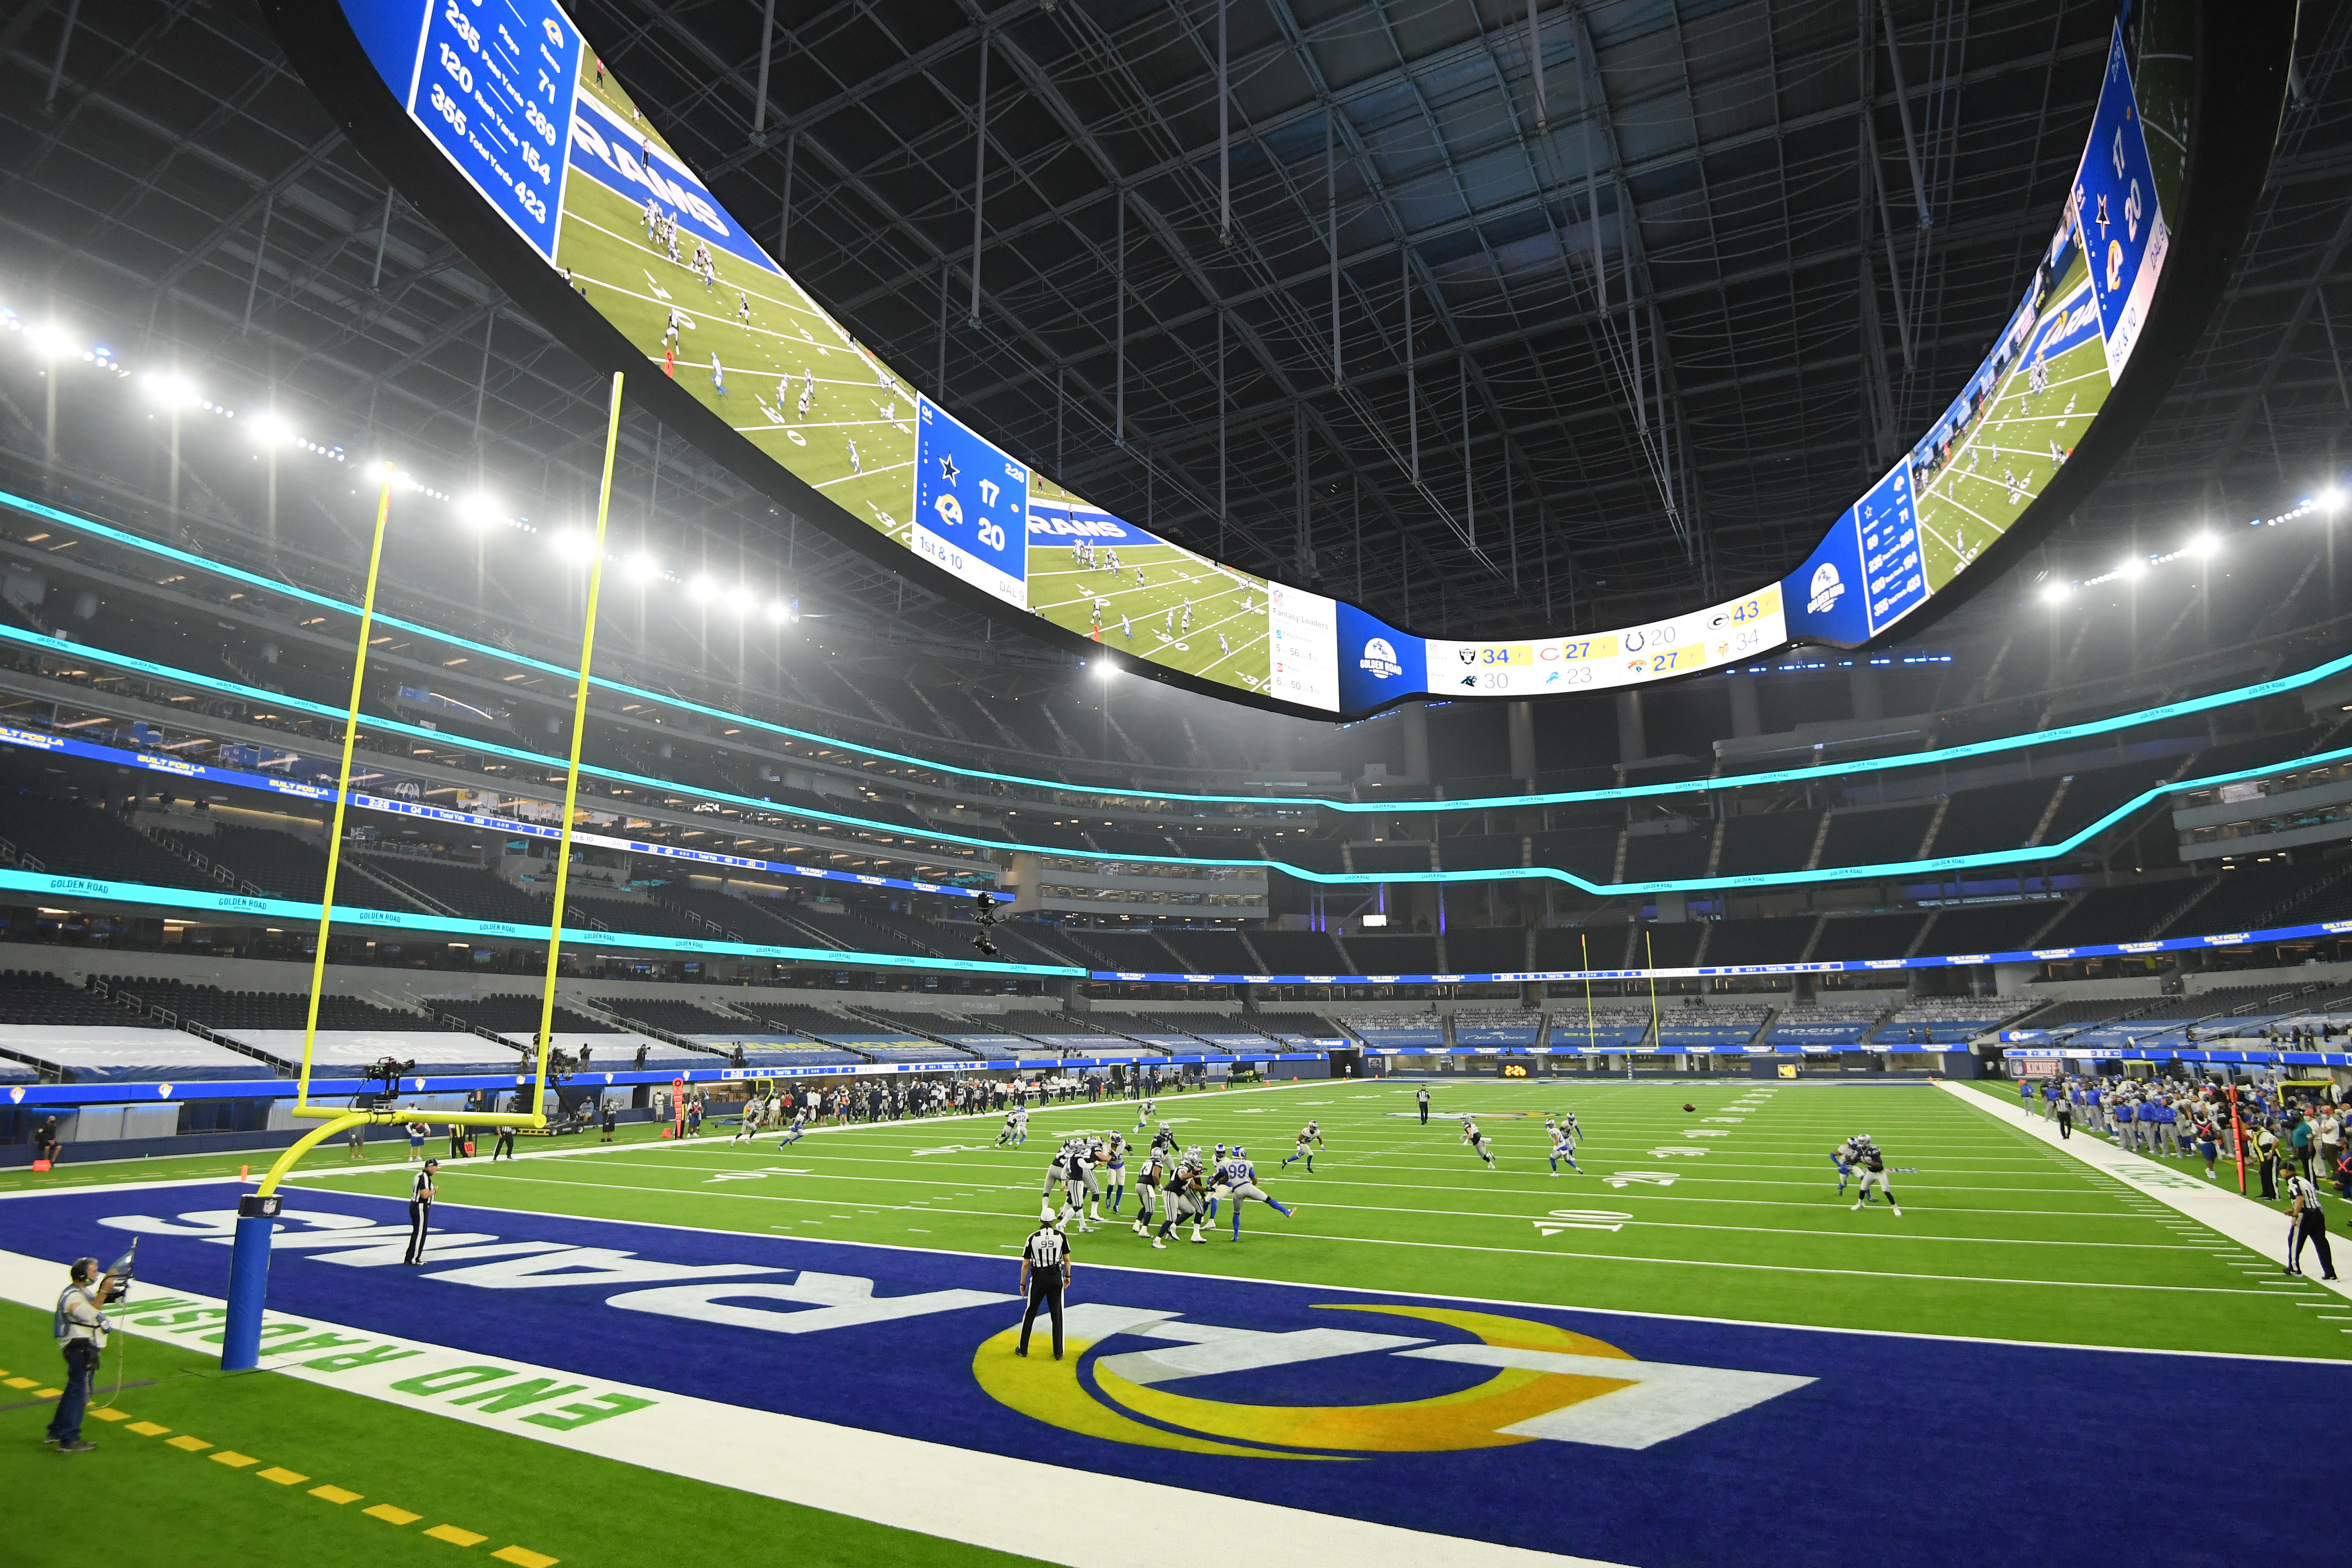 Nfl Sofi Stadium Opens To Surreal Backdrop Without Fans